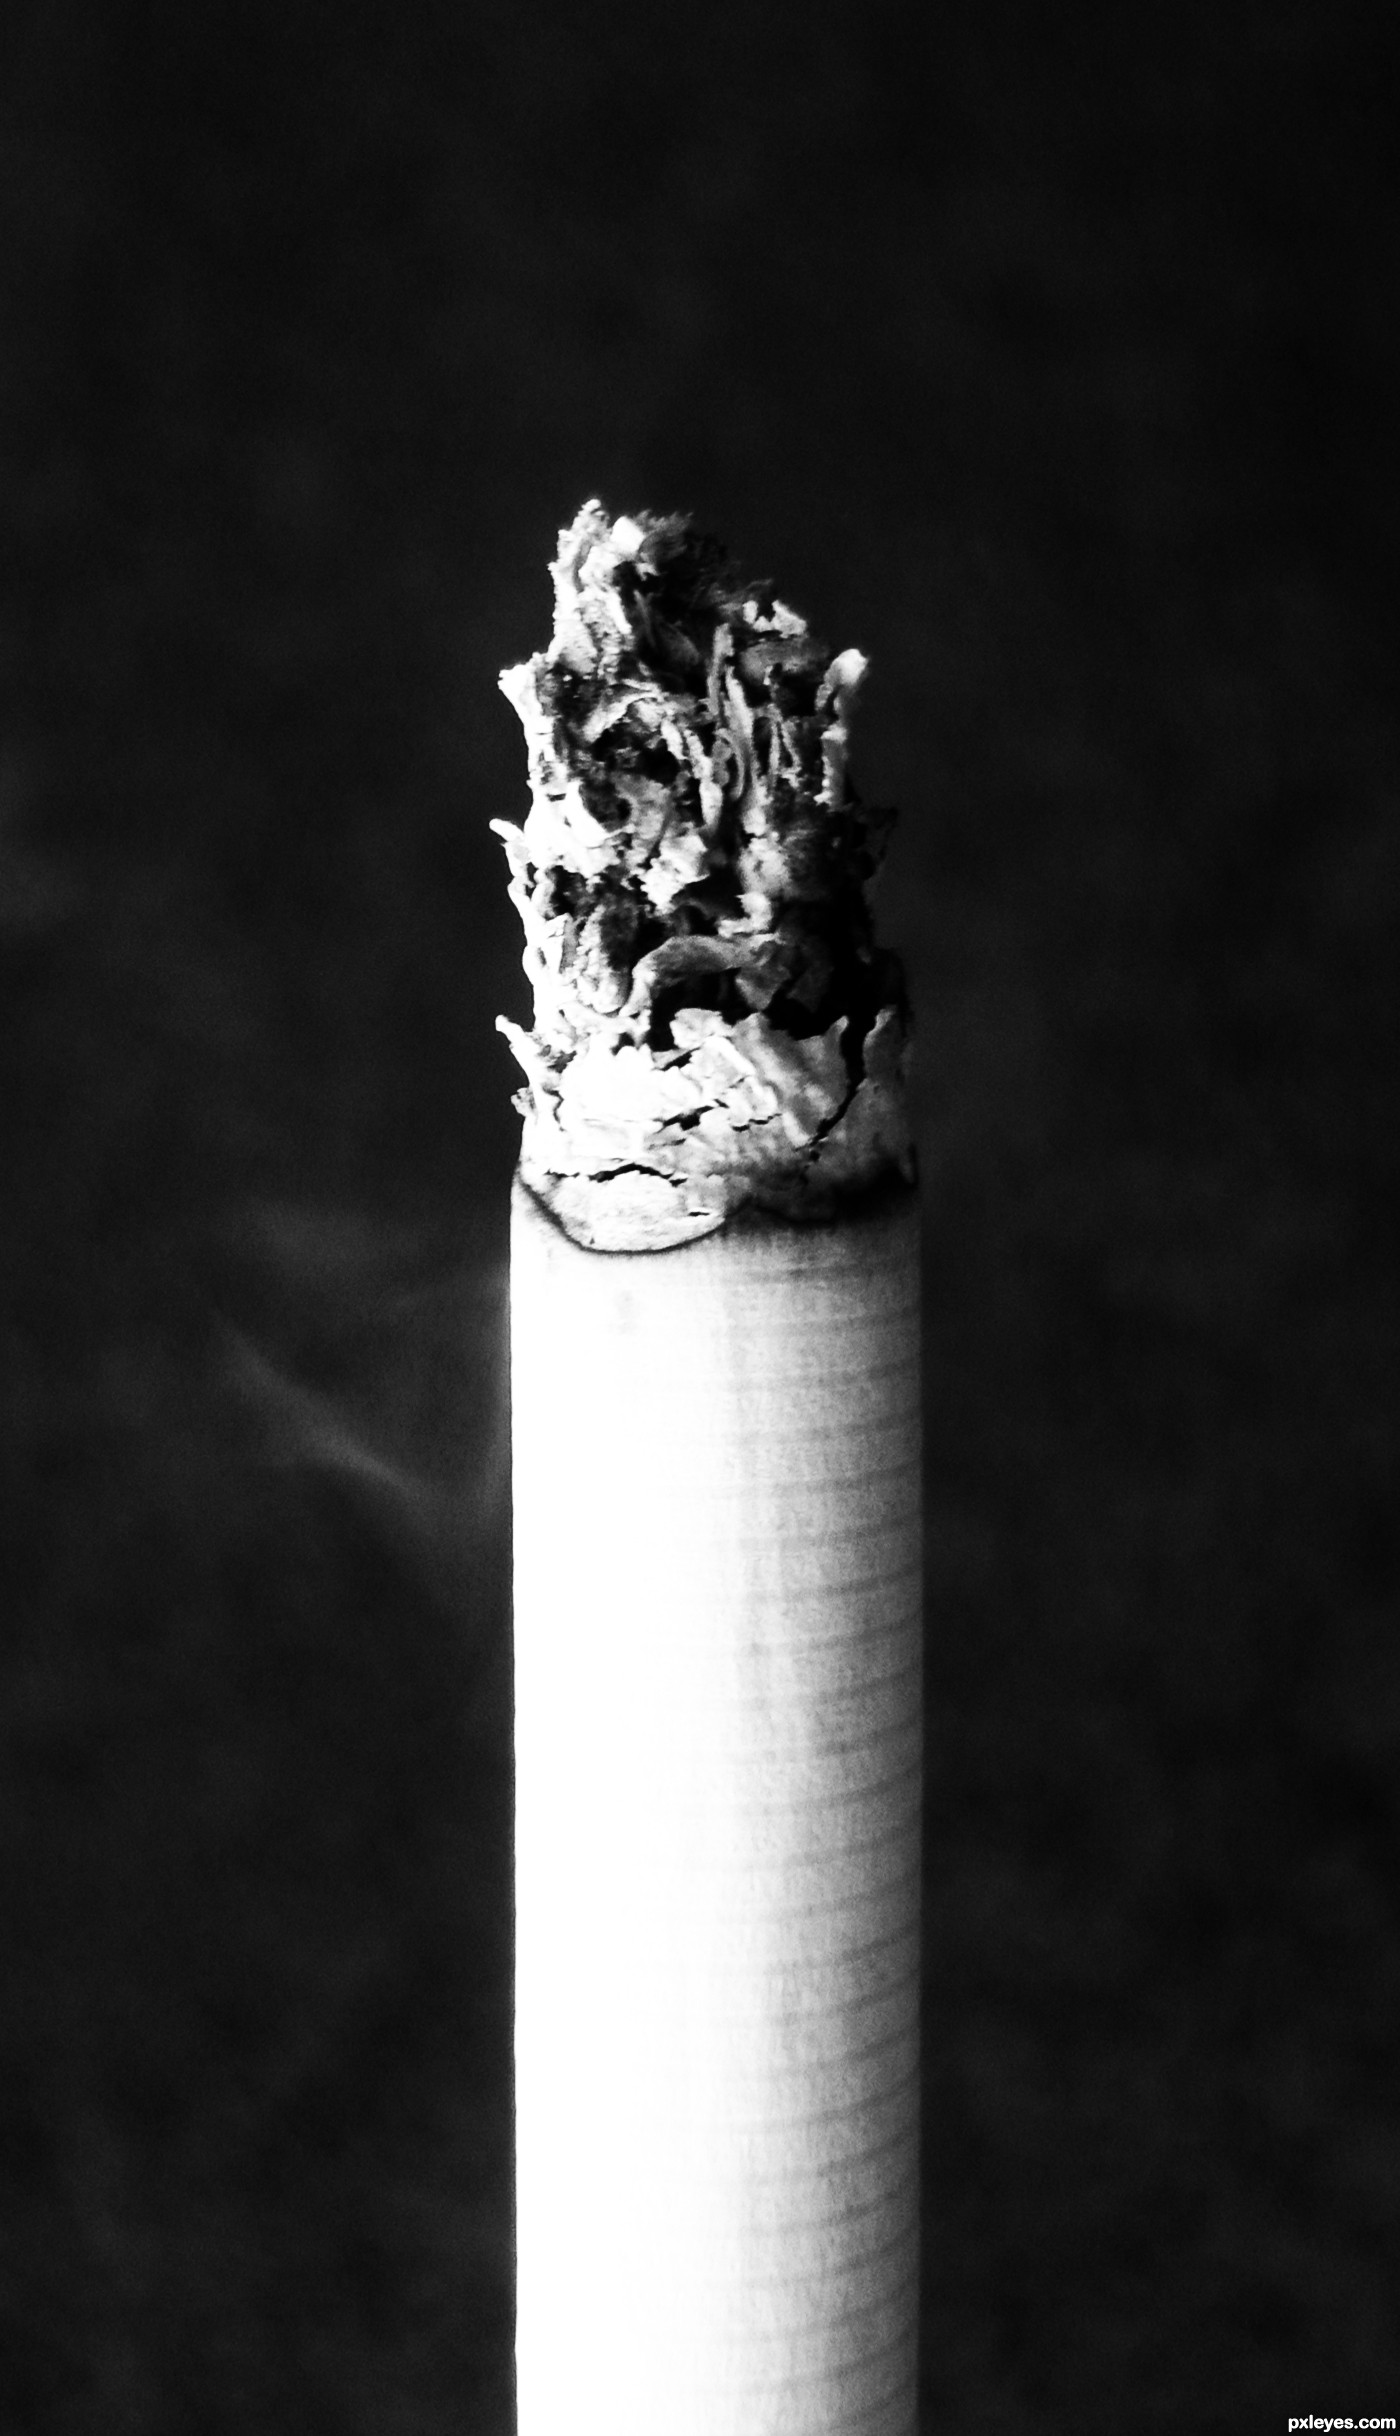 Burning Cigarette Photography